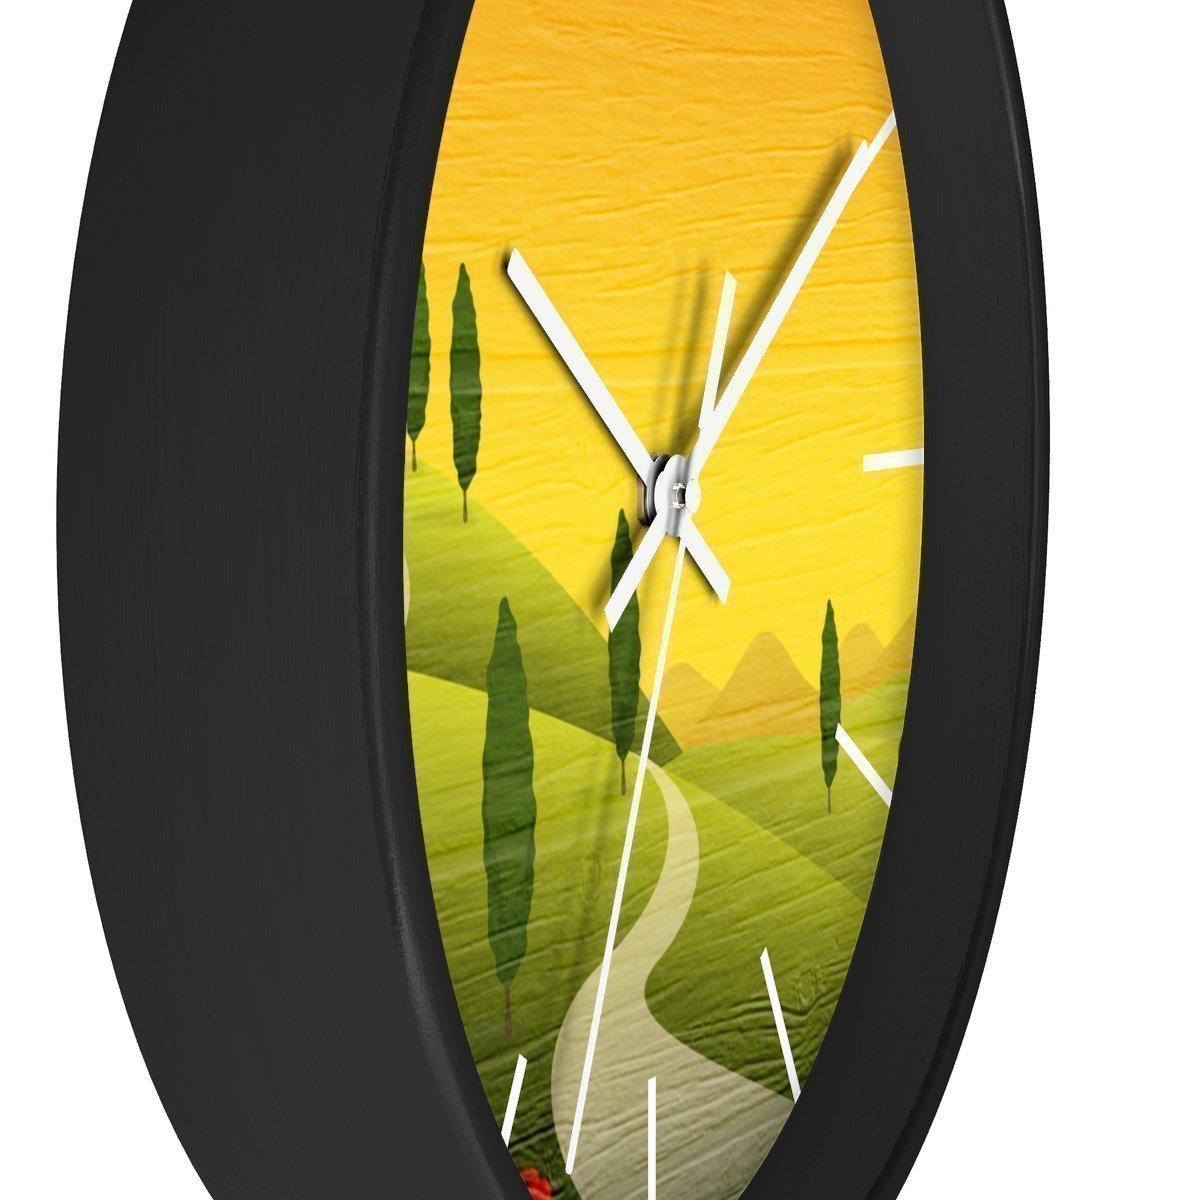 Maison d'Elite Tuscany Wall clock-Home Décor › Accents › Wall Decor › Clocks & Sculptures-Maison d'Elite-Très Elite